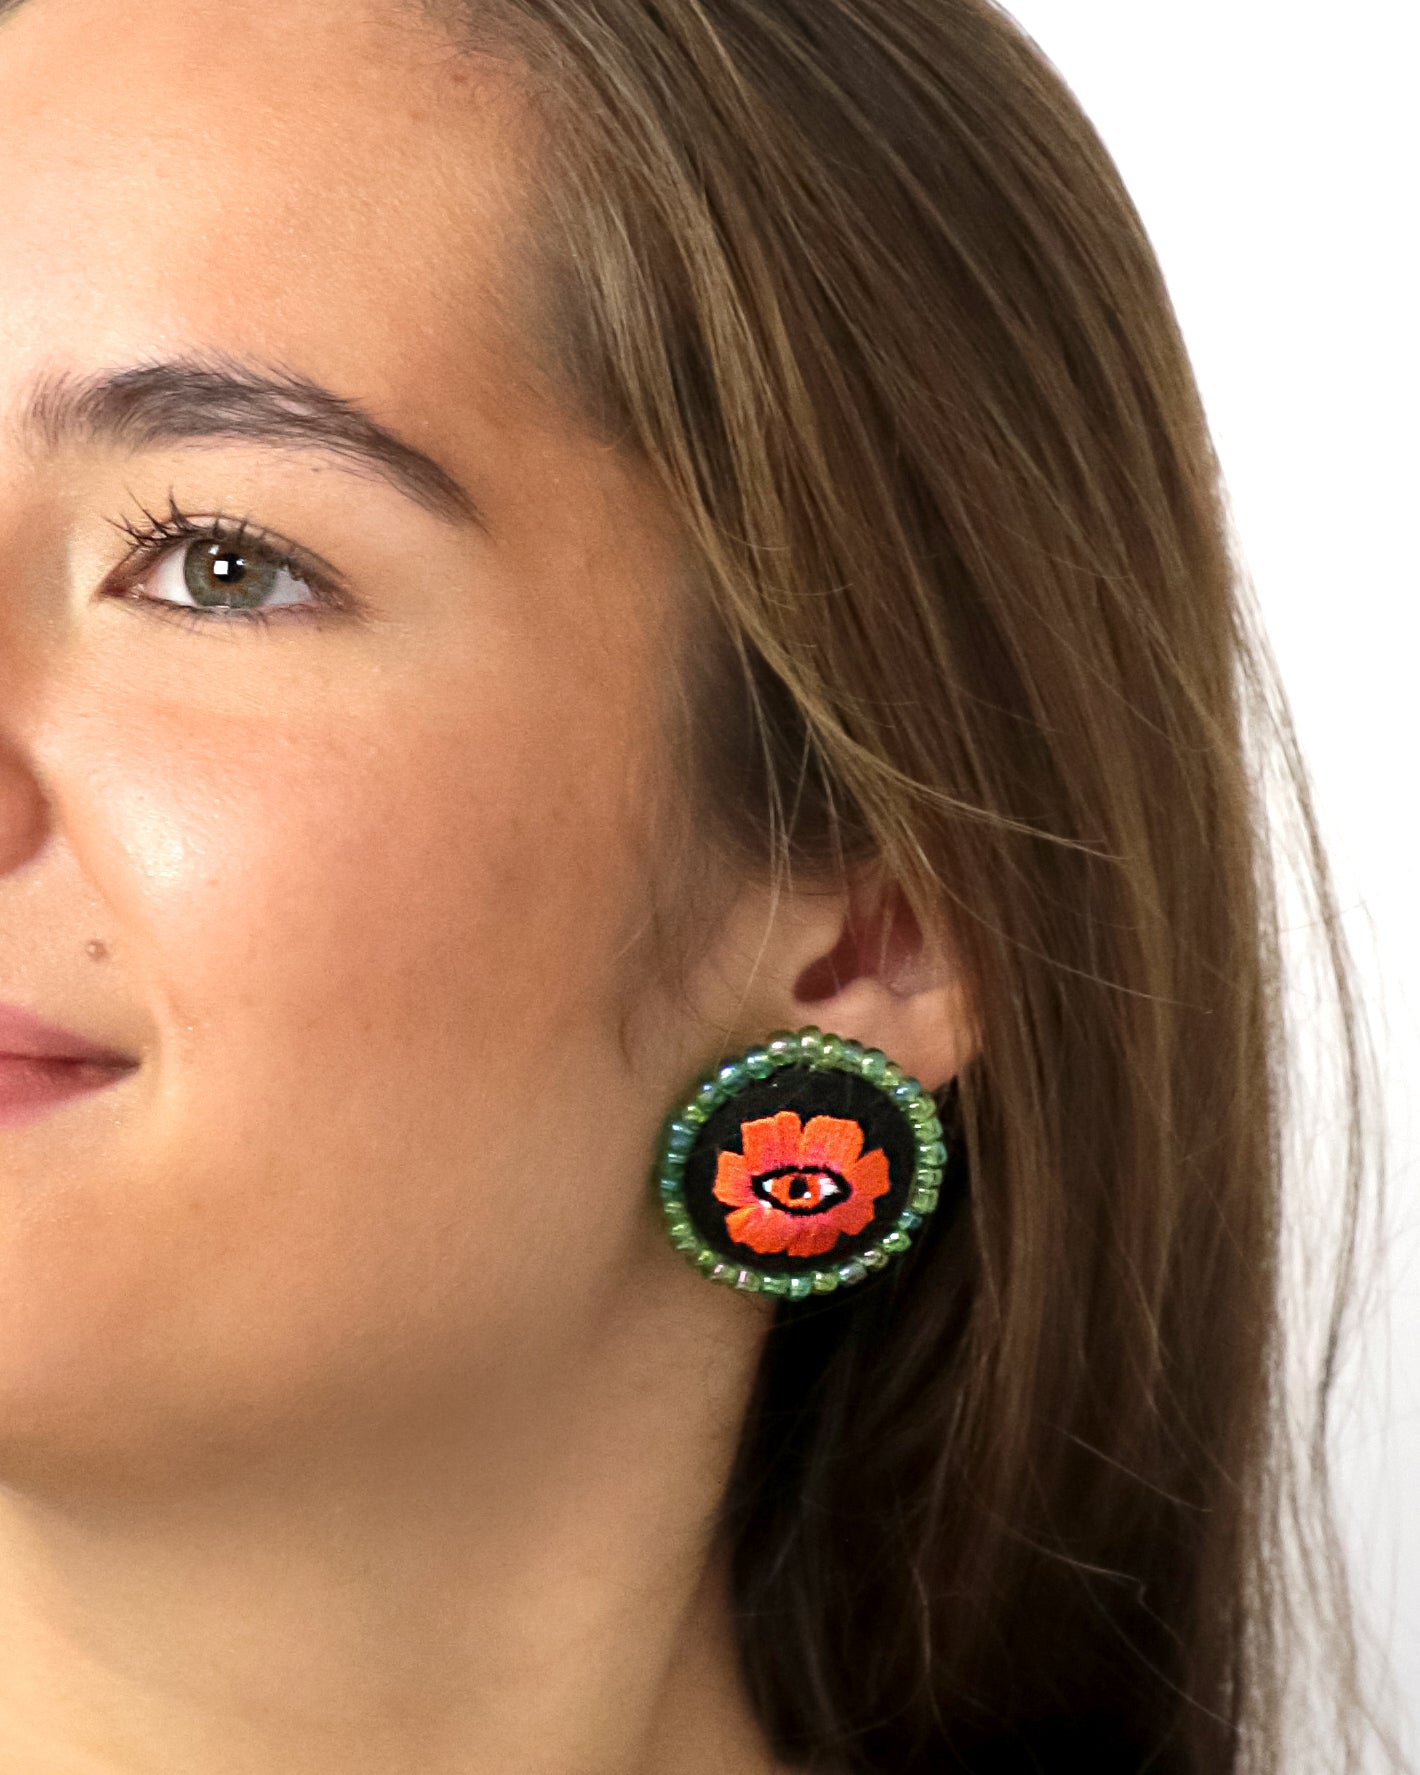 Embroidered Button Earrings | Poppin' Poppy